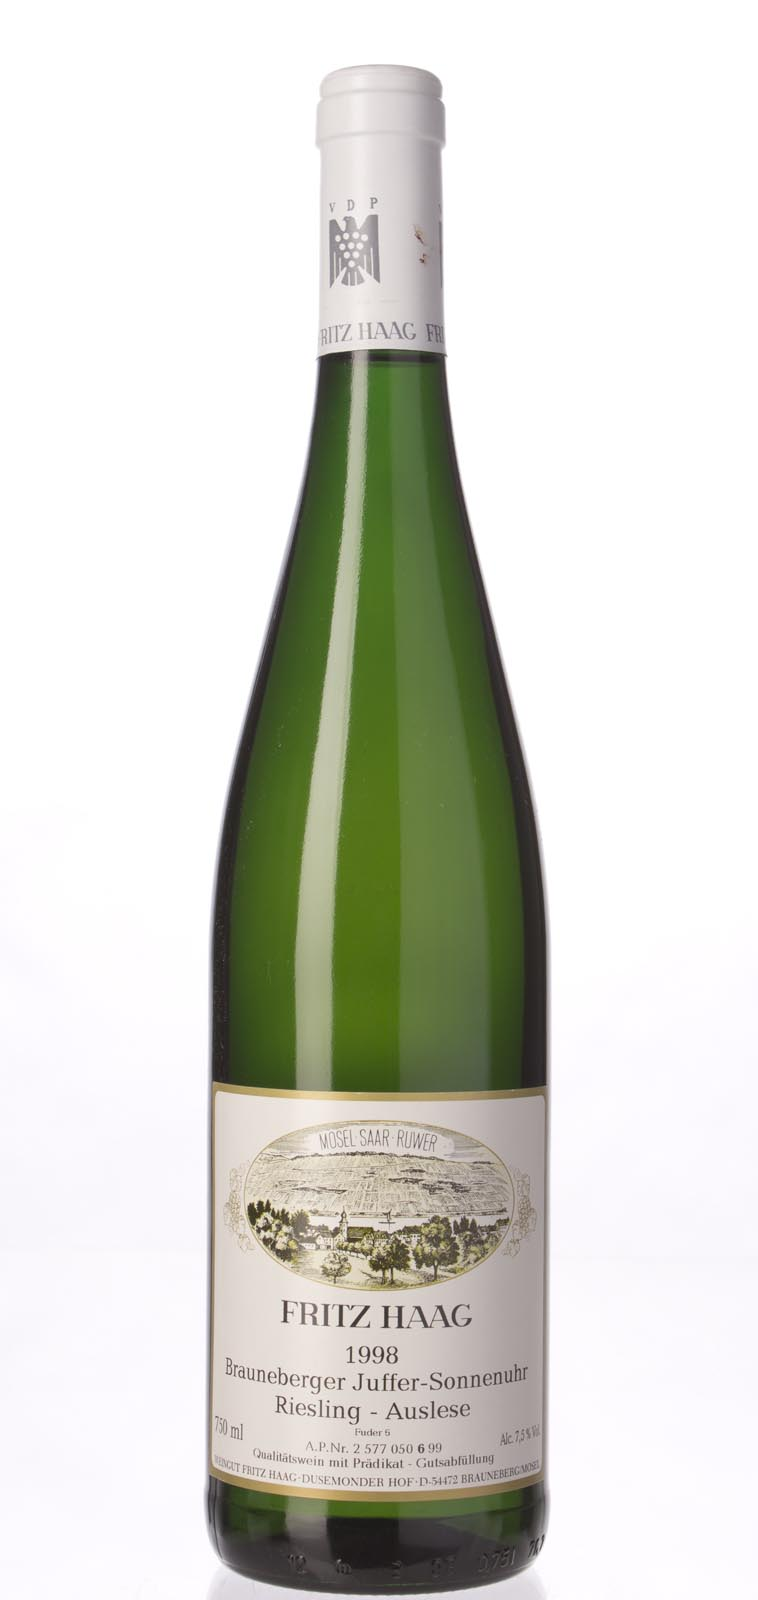 Fritz Haag Brauneberger Juffer Sonnenuhr Riesling Auslese 1998, 750mL () from The BPW - Merchants of rare and fine wines.